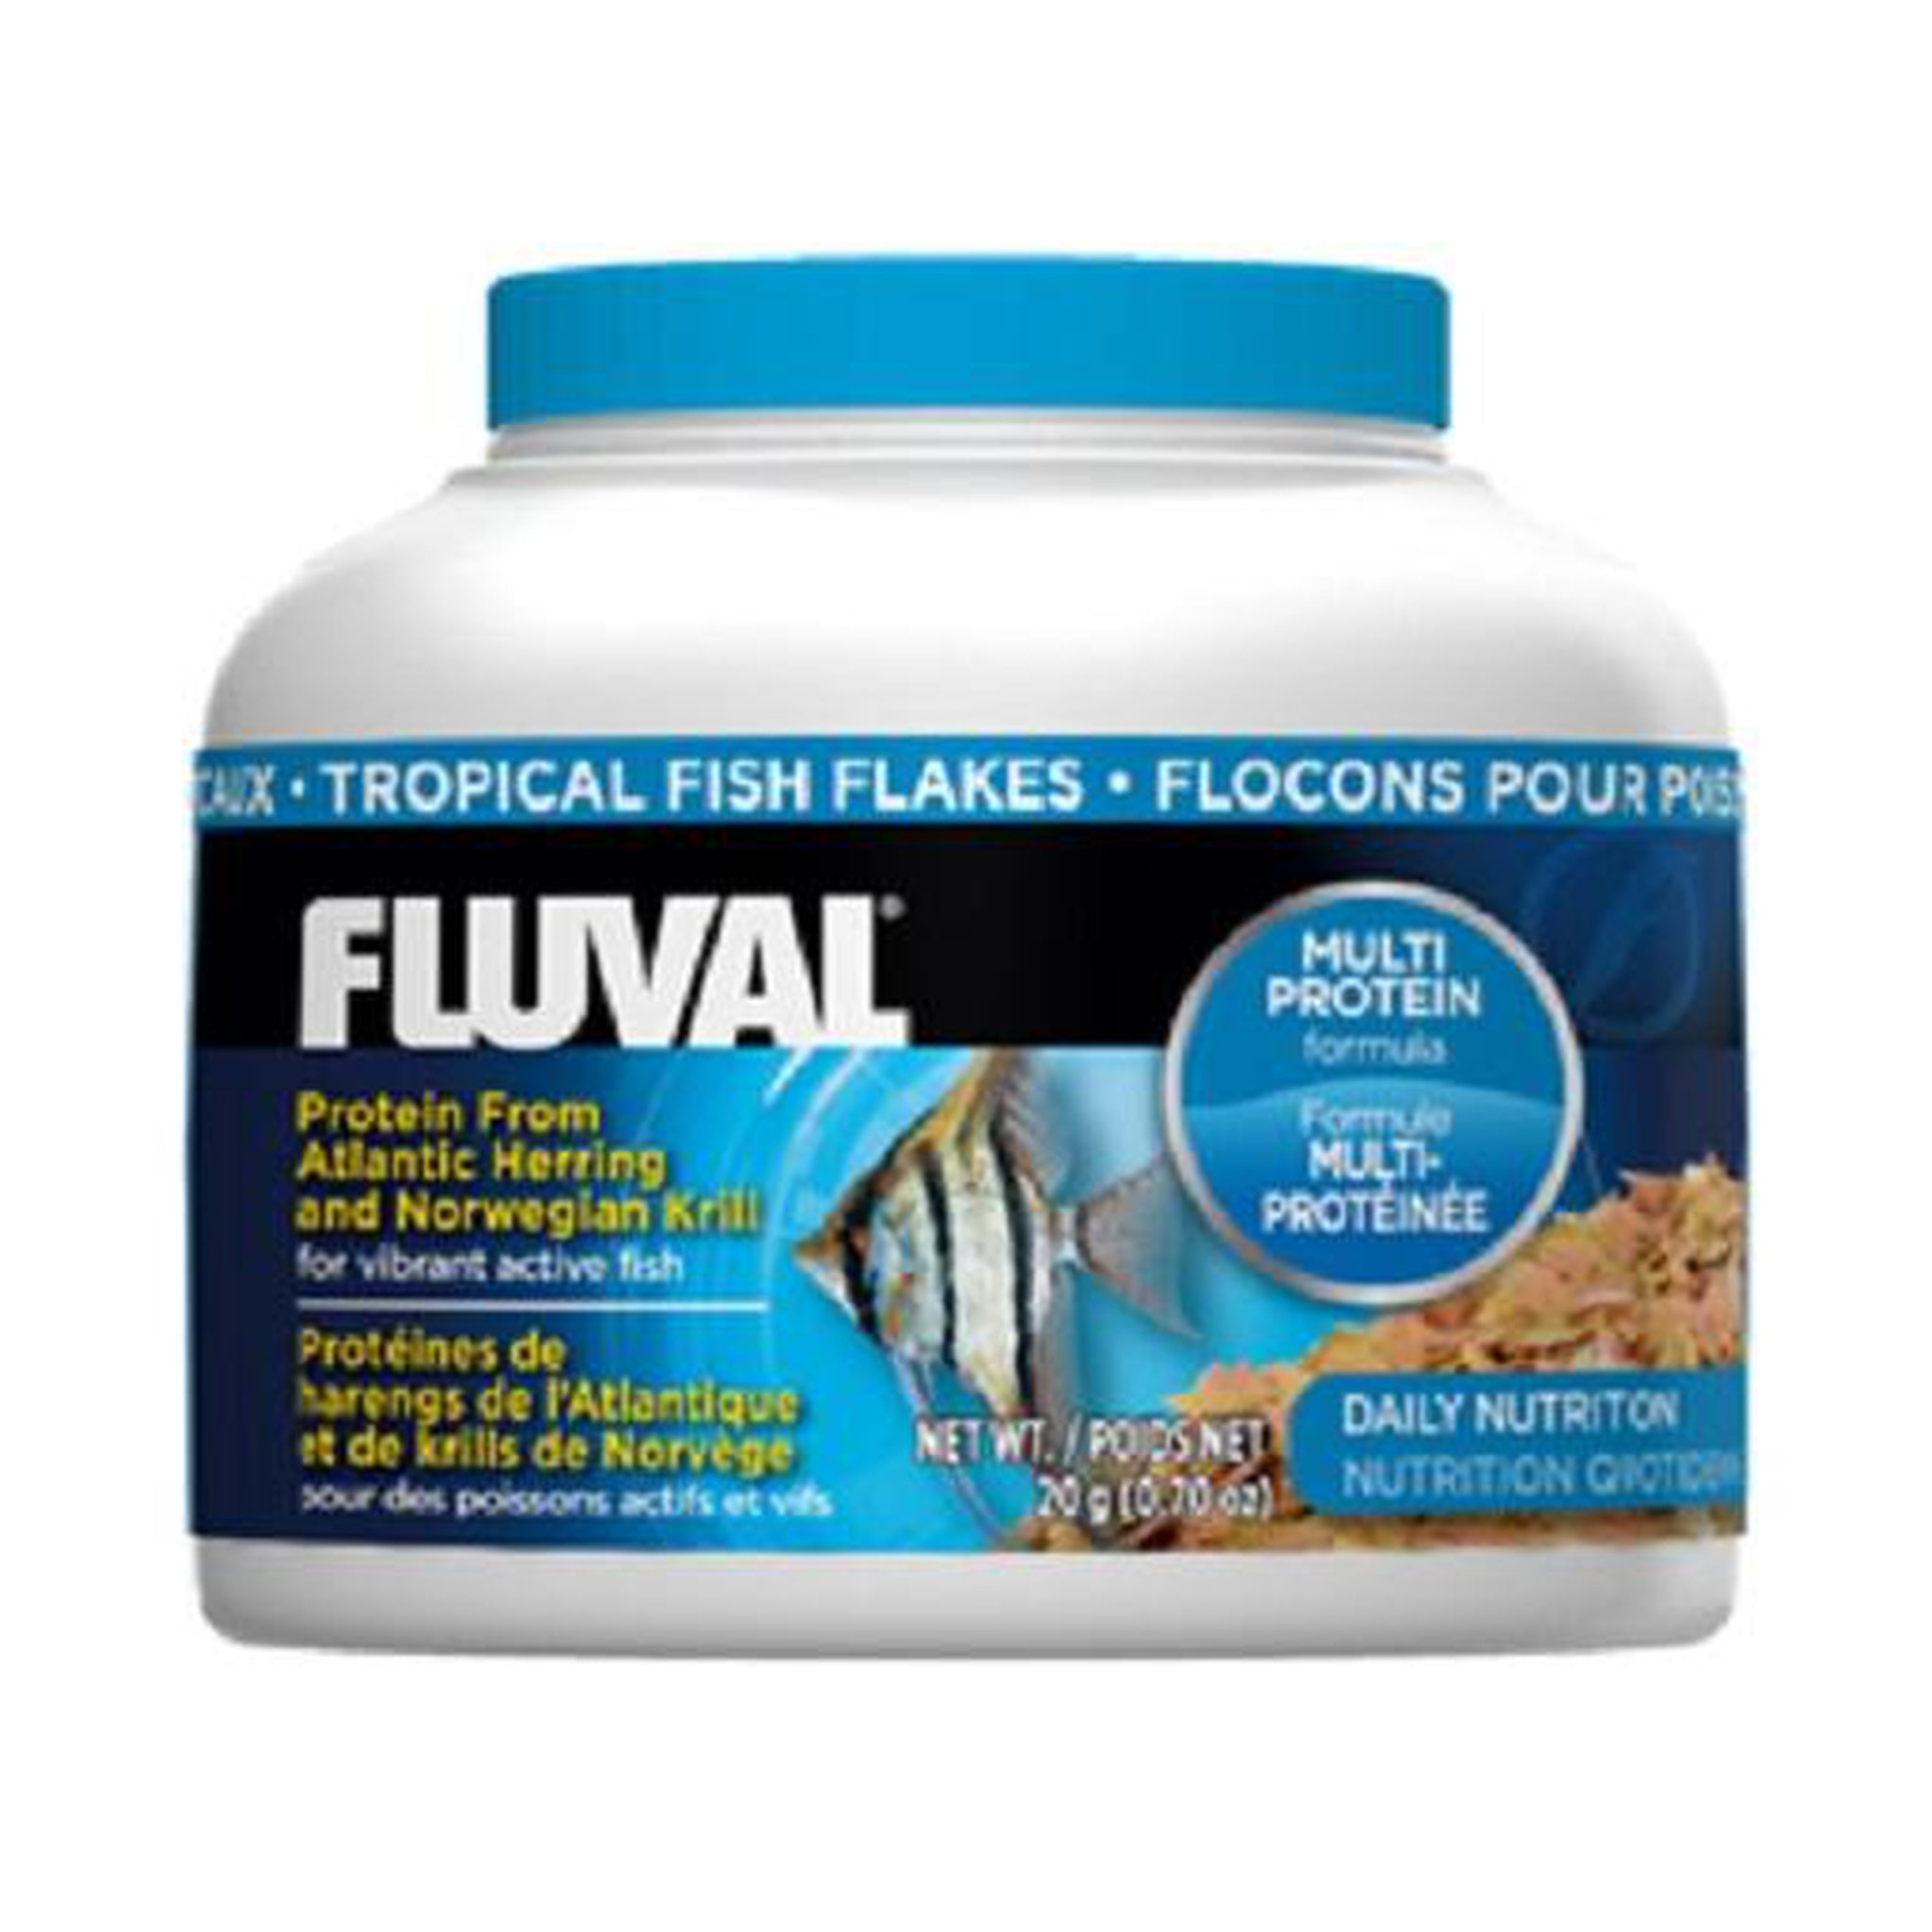 Fluval_Food_Tropical_Flakes_18gr_RIC935QA5VUM.jpg